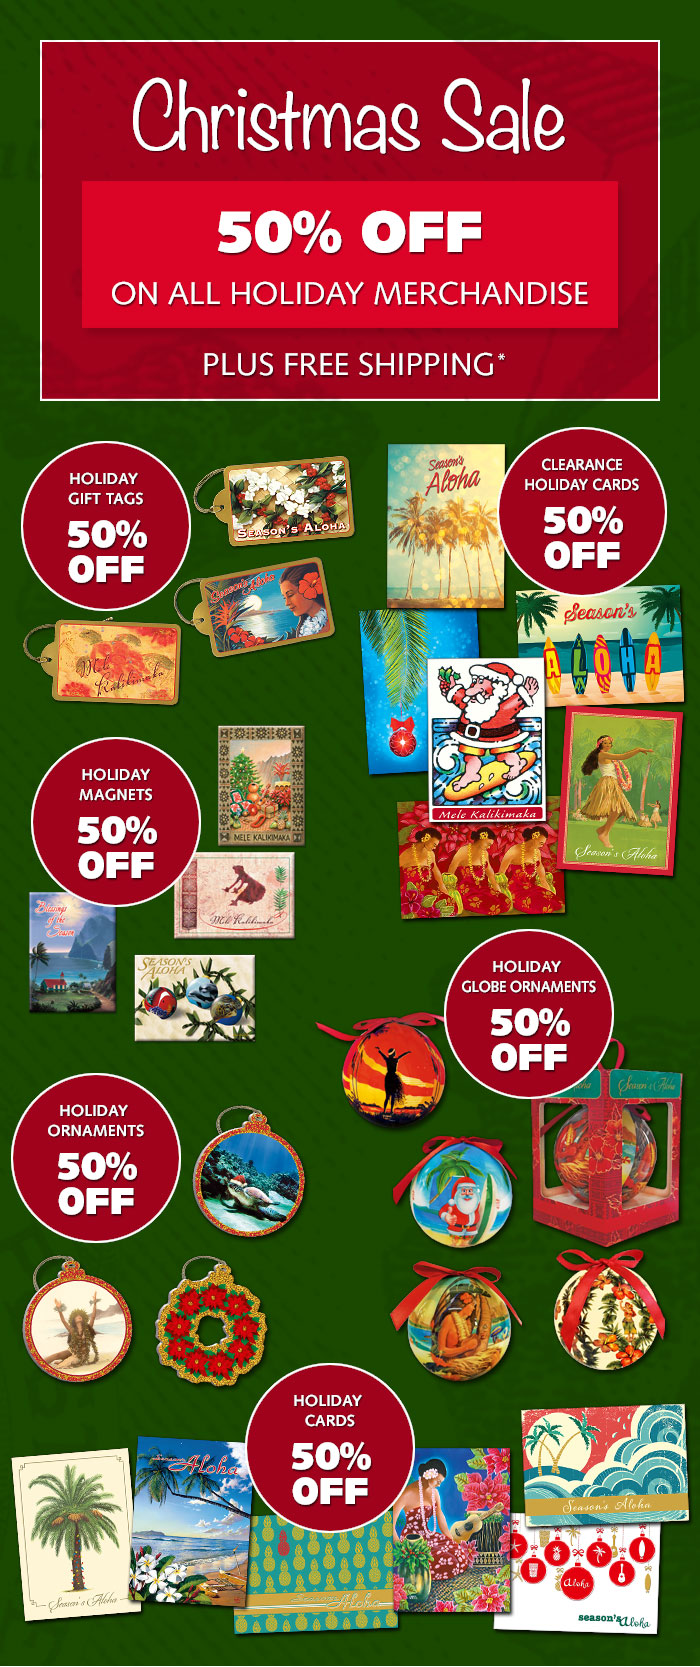 Christmas in July - Up to 50% OFF all Holiday Merchandise